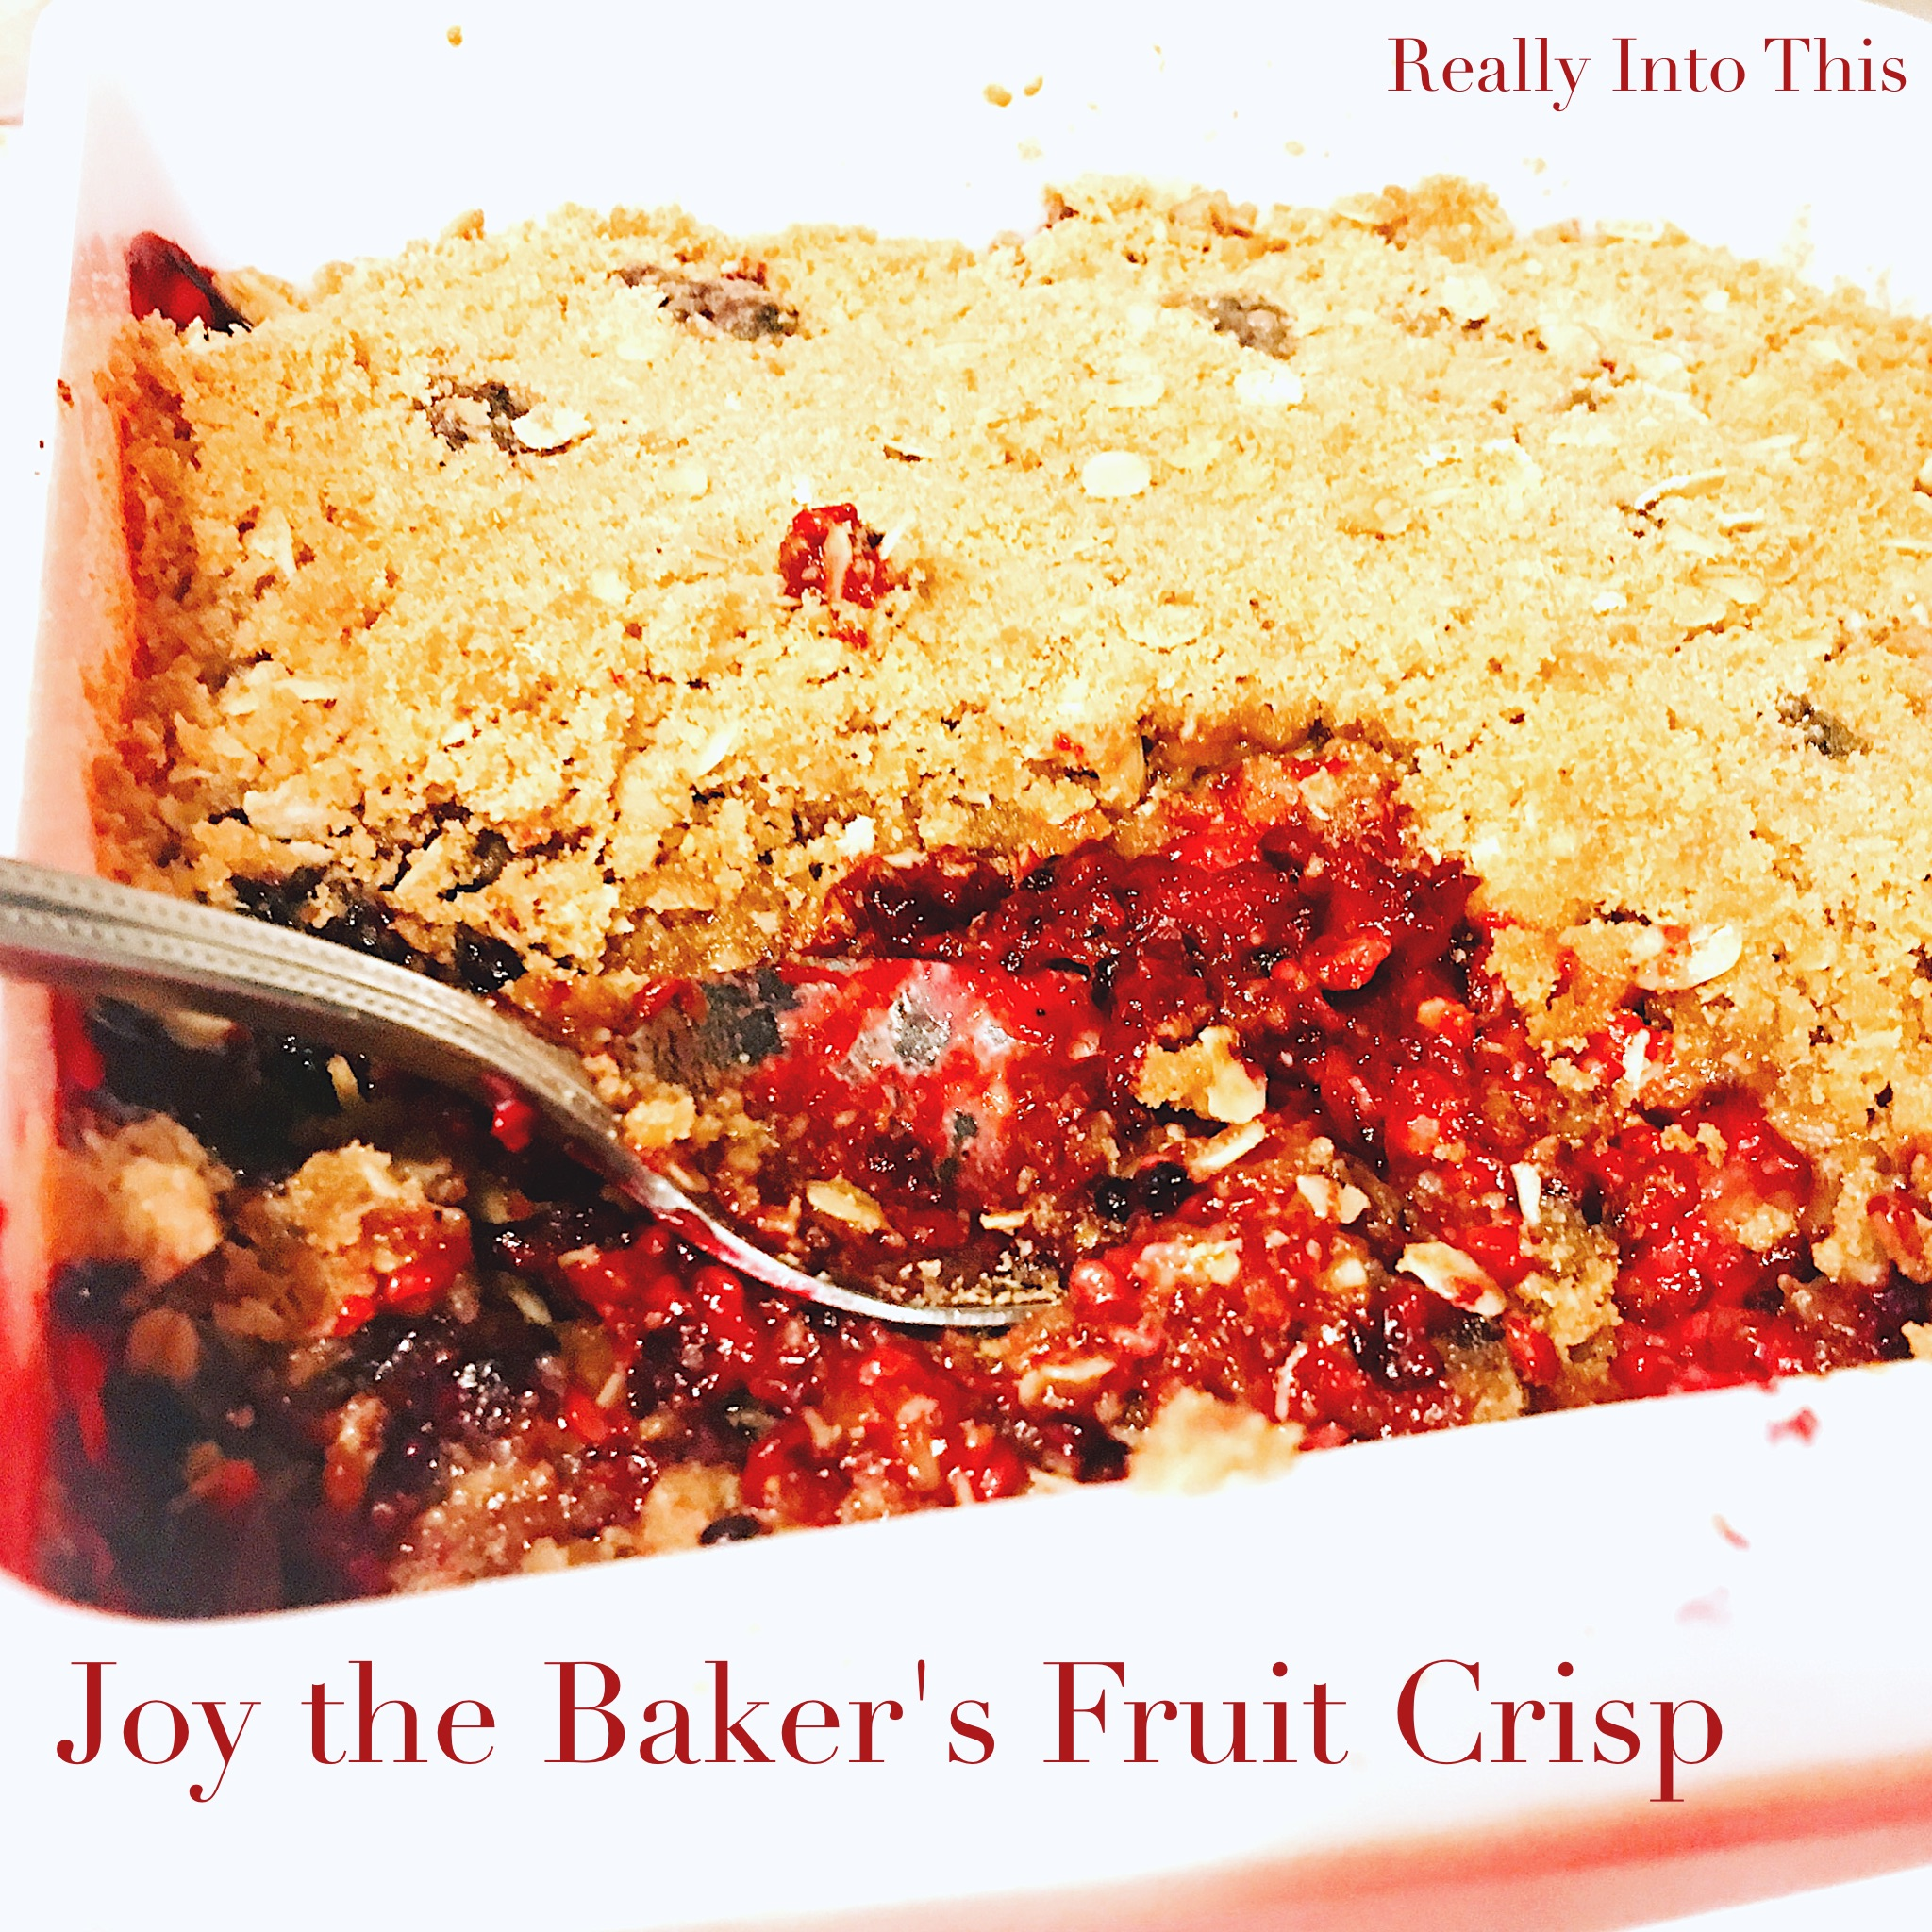 Joy the Baker Fruit Crisp Recipe Pinterest Instagram